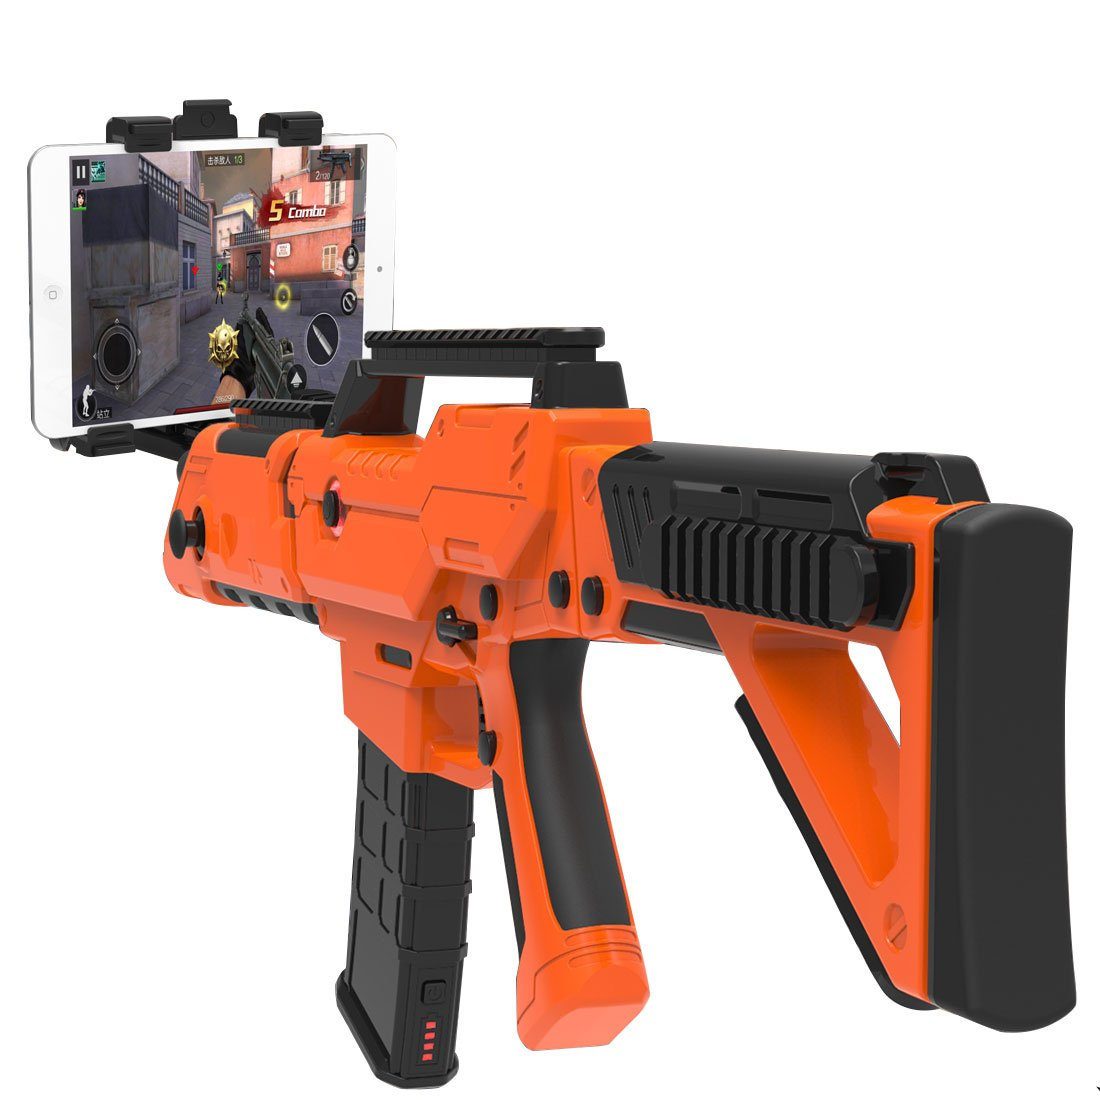 VR Bluetooth Game Gun for HTC VIVE,Game Pad Shooting Controller TPS FPS with Motor Vibration for 4 to 6 Inch Smartphone iPhone Samsung Tablet iPad Wireless Android,BENEVE(Orange)